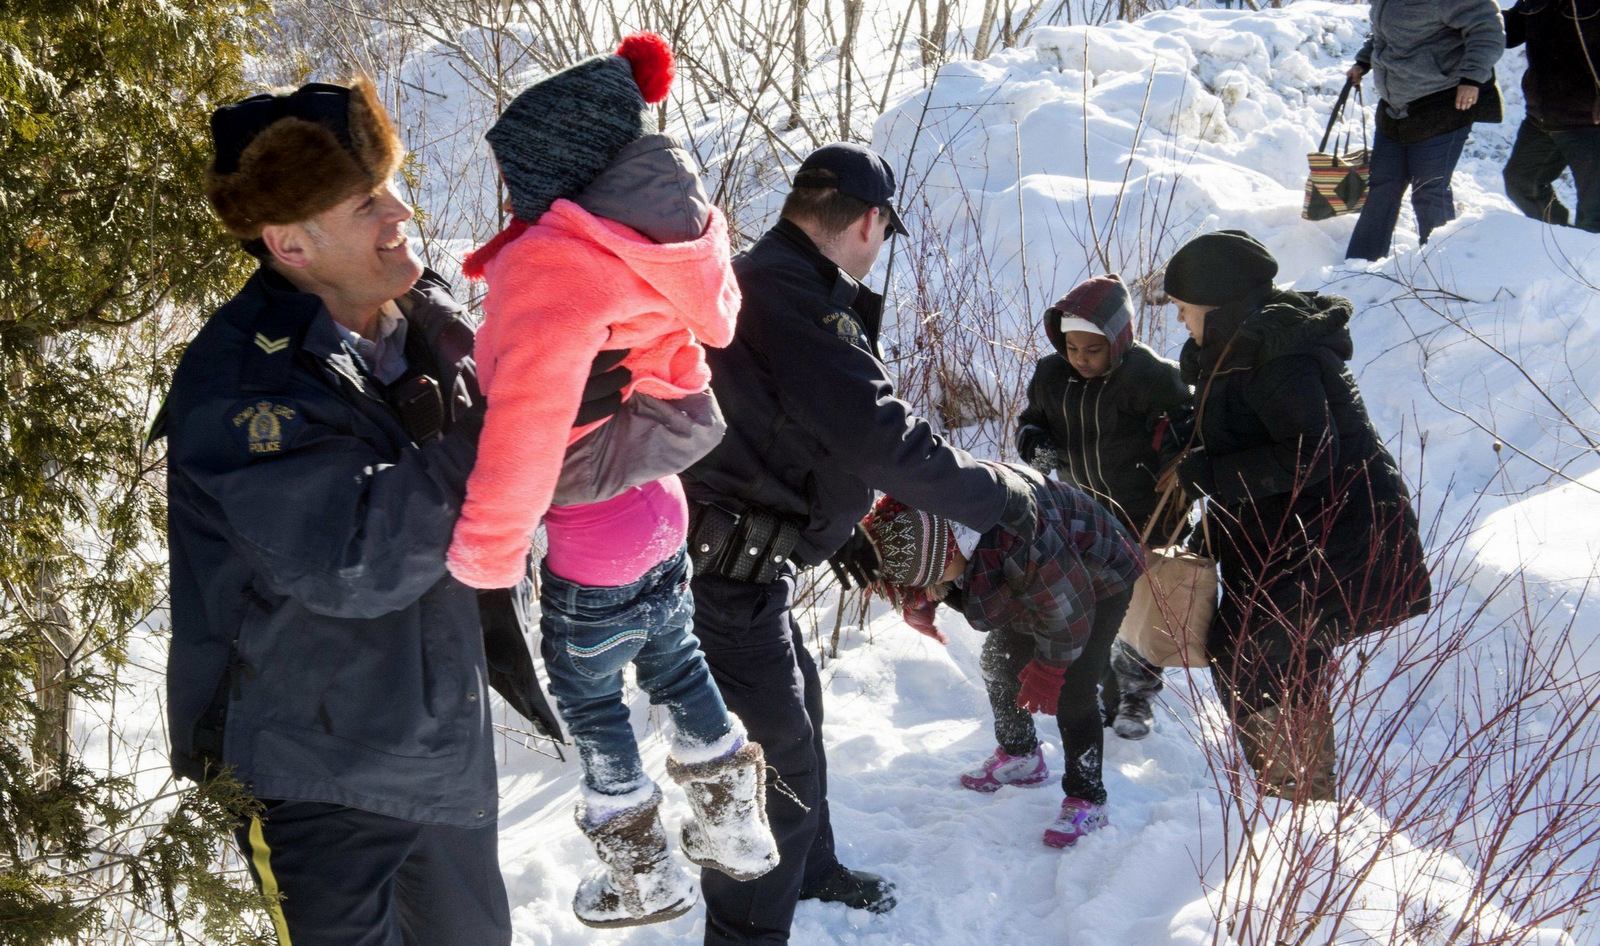 Family members are helped into Canada by Royal Canadian Mounted Police officers along the U.S.-Canada border near Hemmingford, Quebec. (Canadian Press via AP)